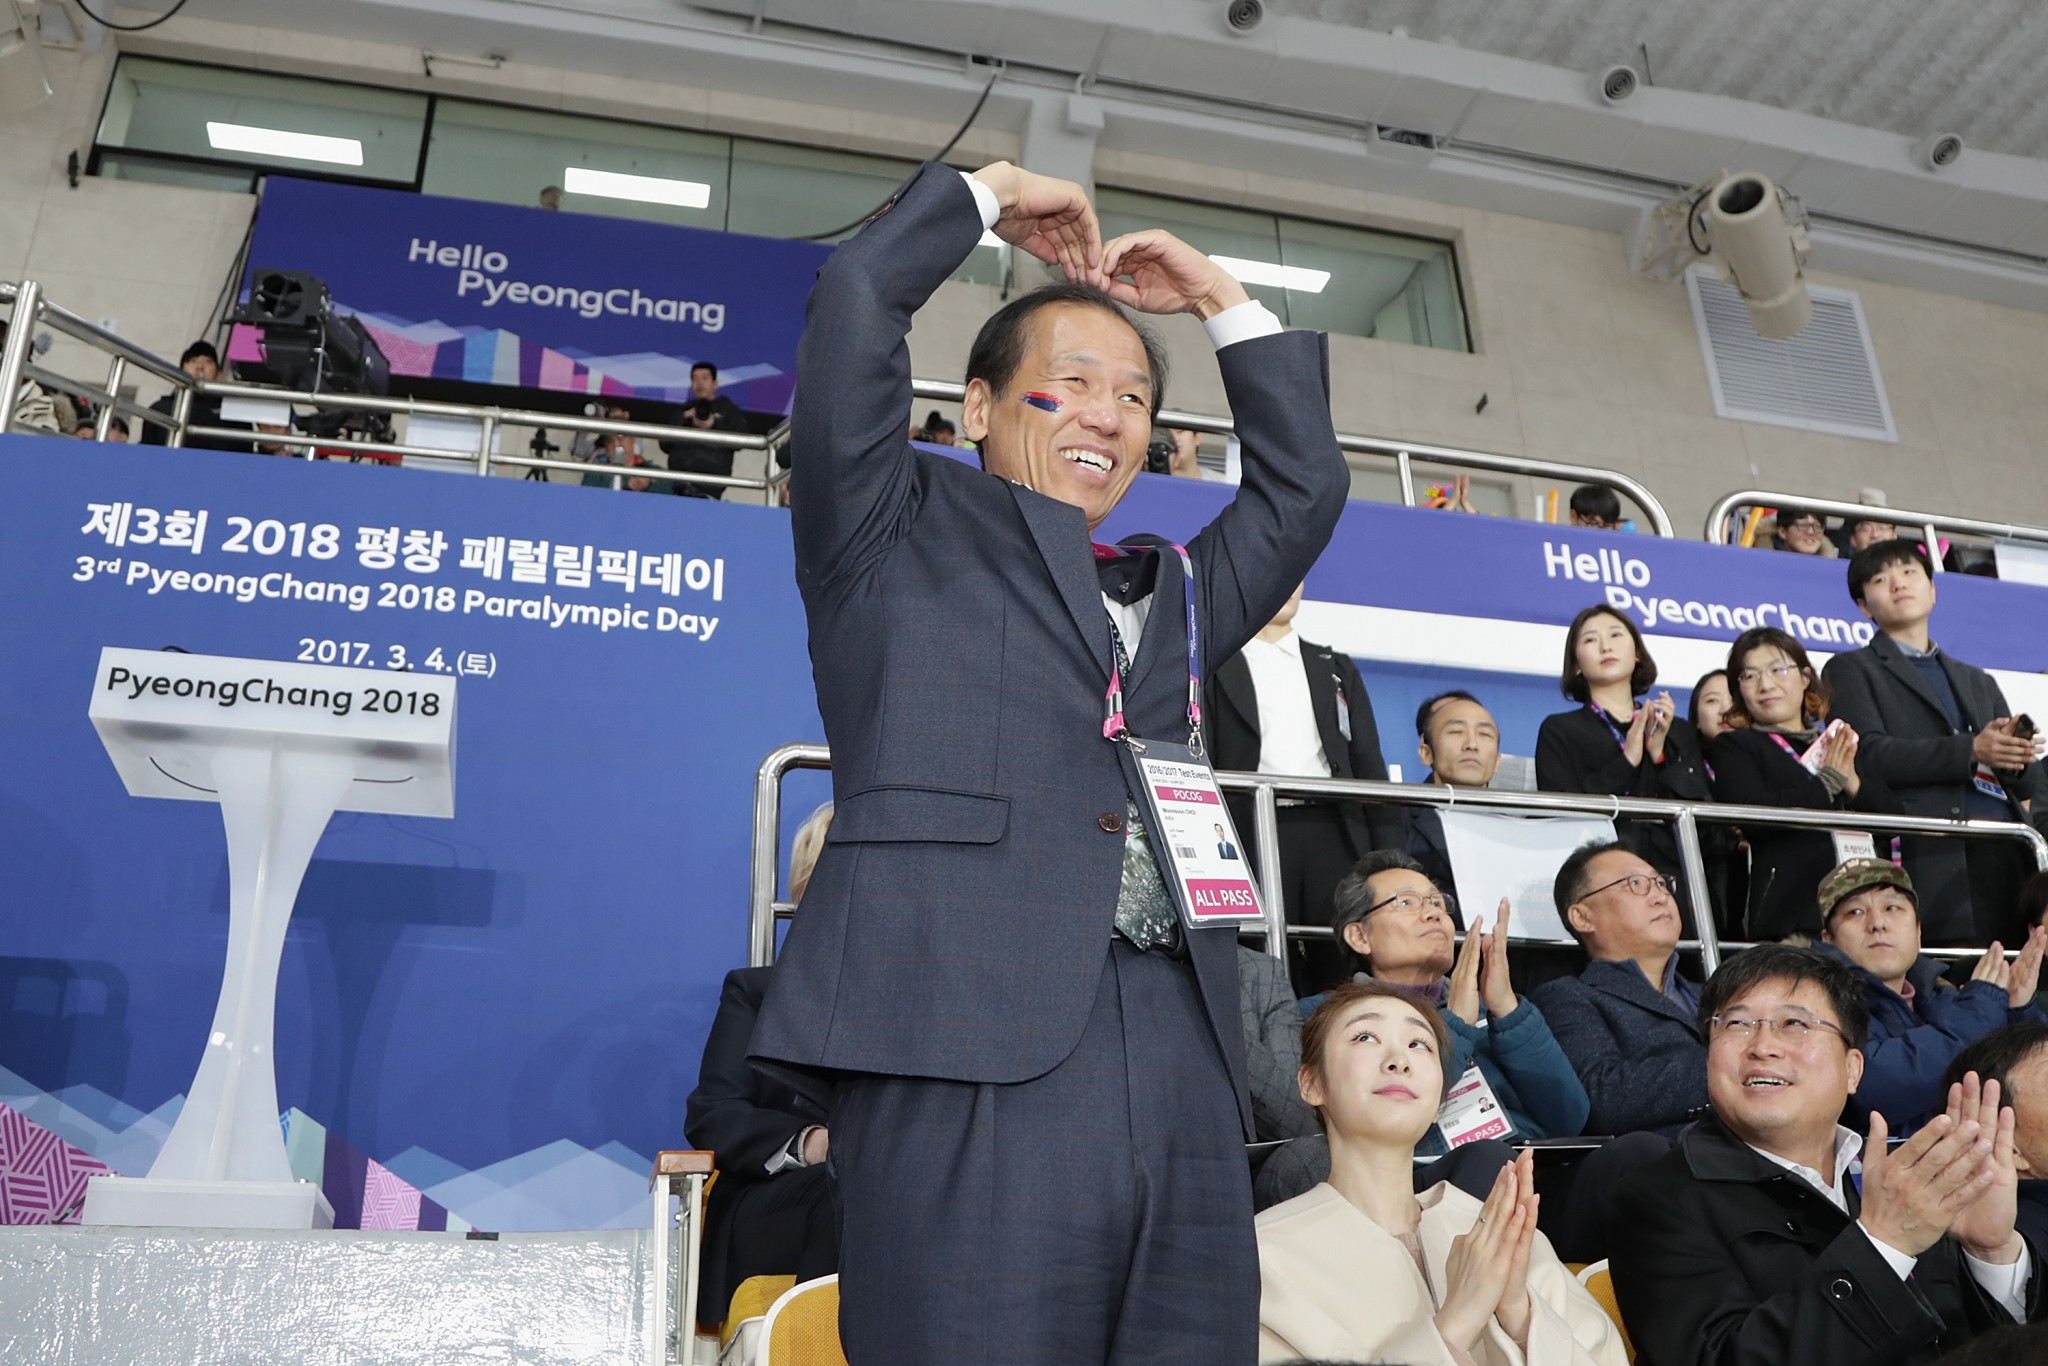 Gangwon Province Governor Choi Moon-soon has also been given the prestigious honour ©Getty Images